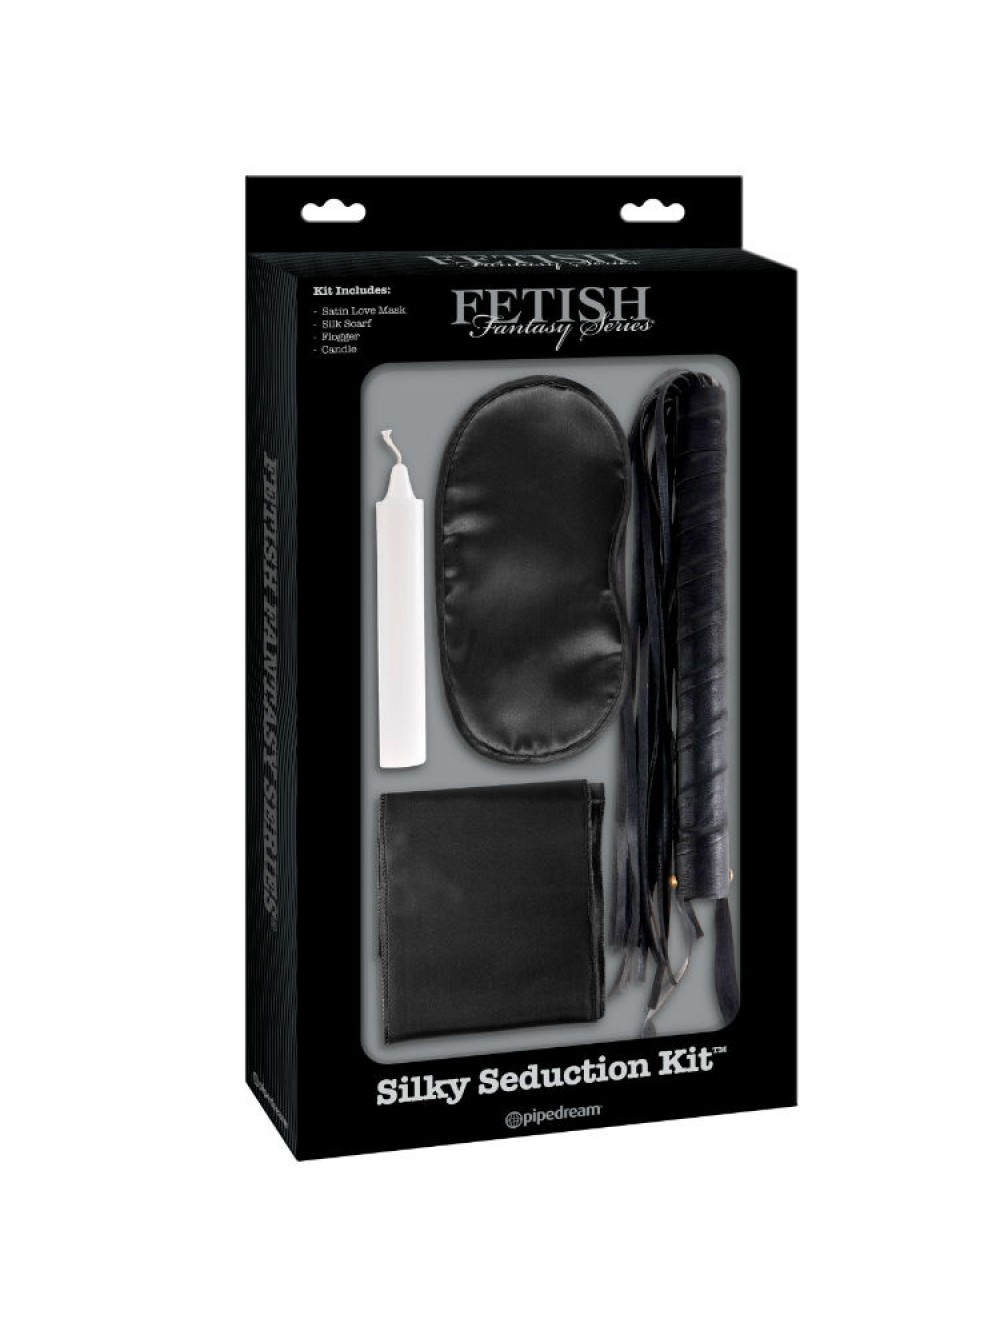 LIMITED EDITION SILKY SEDUCTION KIT